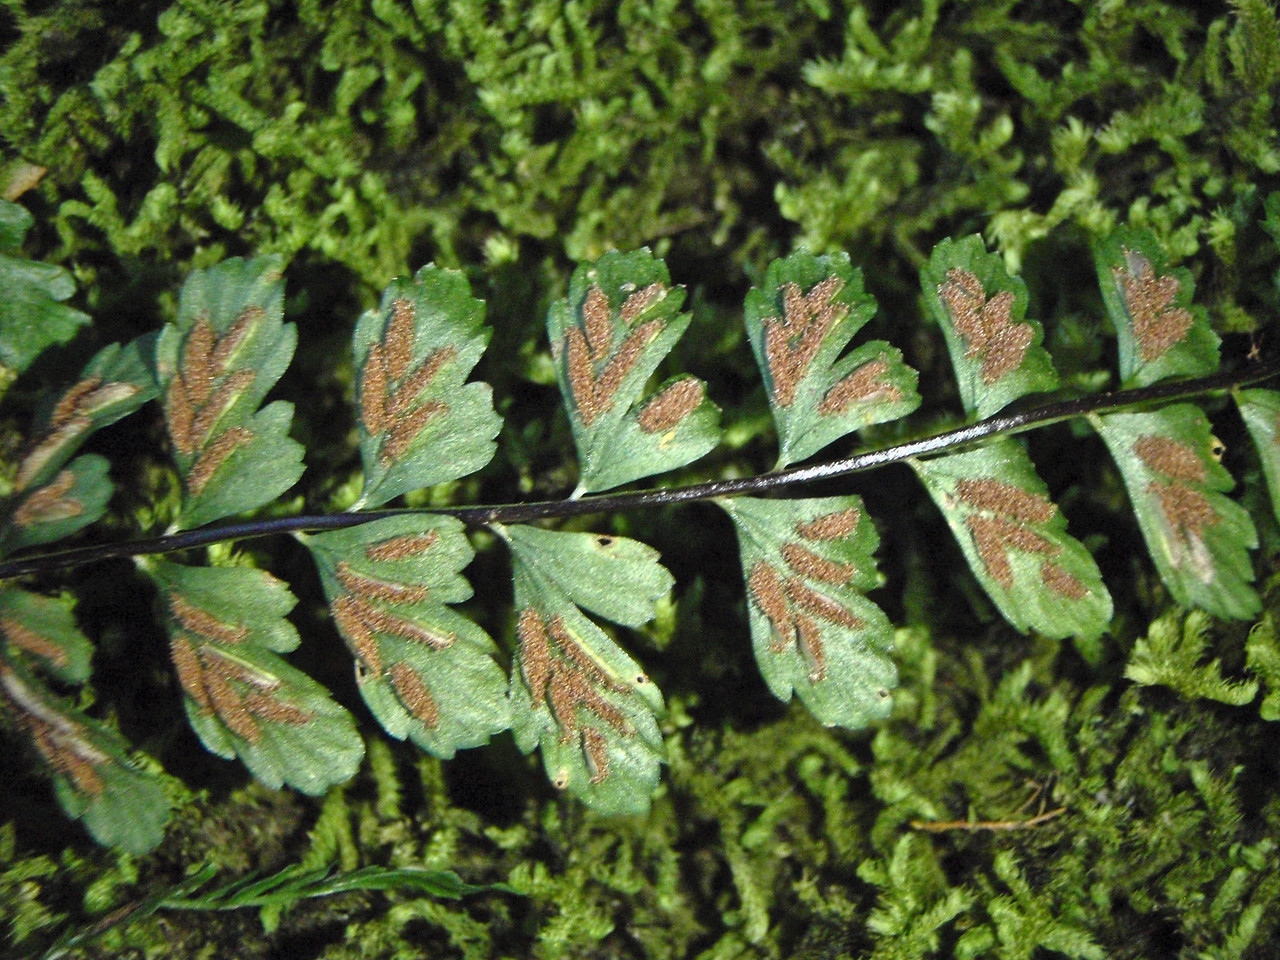 """Asplenium peruvianum var. insulare (East Maui)This image is licensed under the Creative Commons Attribution-NonCommercial 3.0 Unported license.  You may share and adapt this work, but only with attribution (""""by Hank L. Oppenheimer"""") and only for non-commercial purposes unless permission is obtained from the copyright-holder (contact webmaster@hear.org)."""